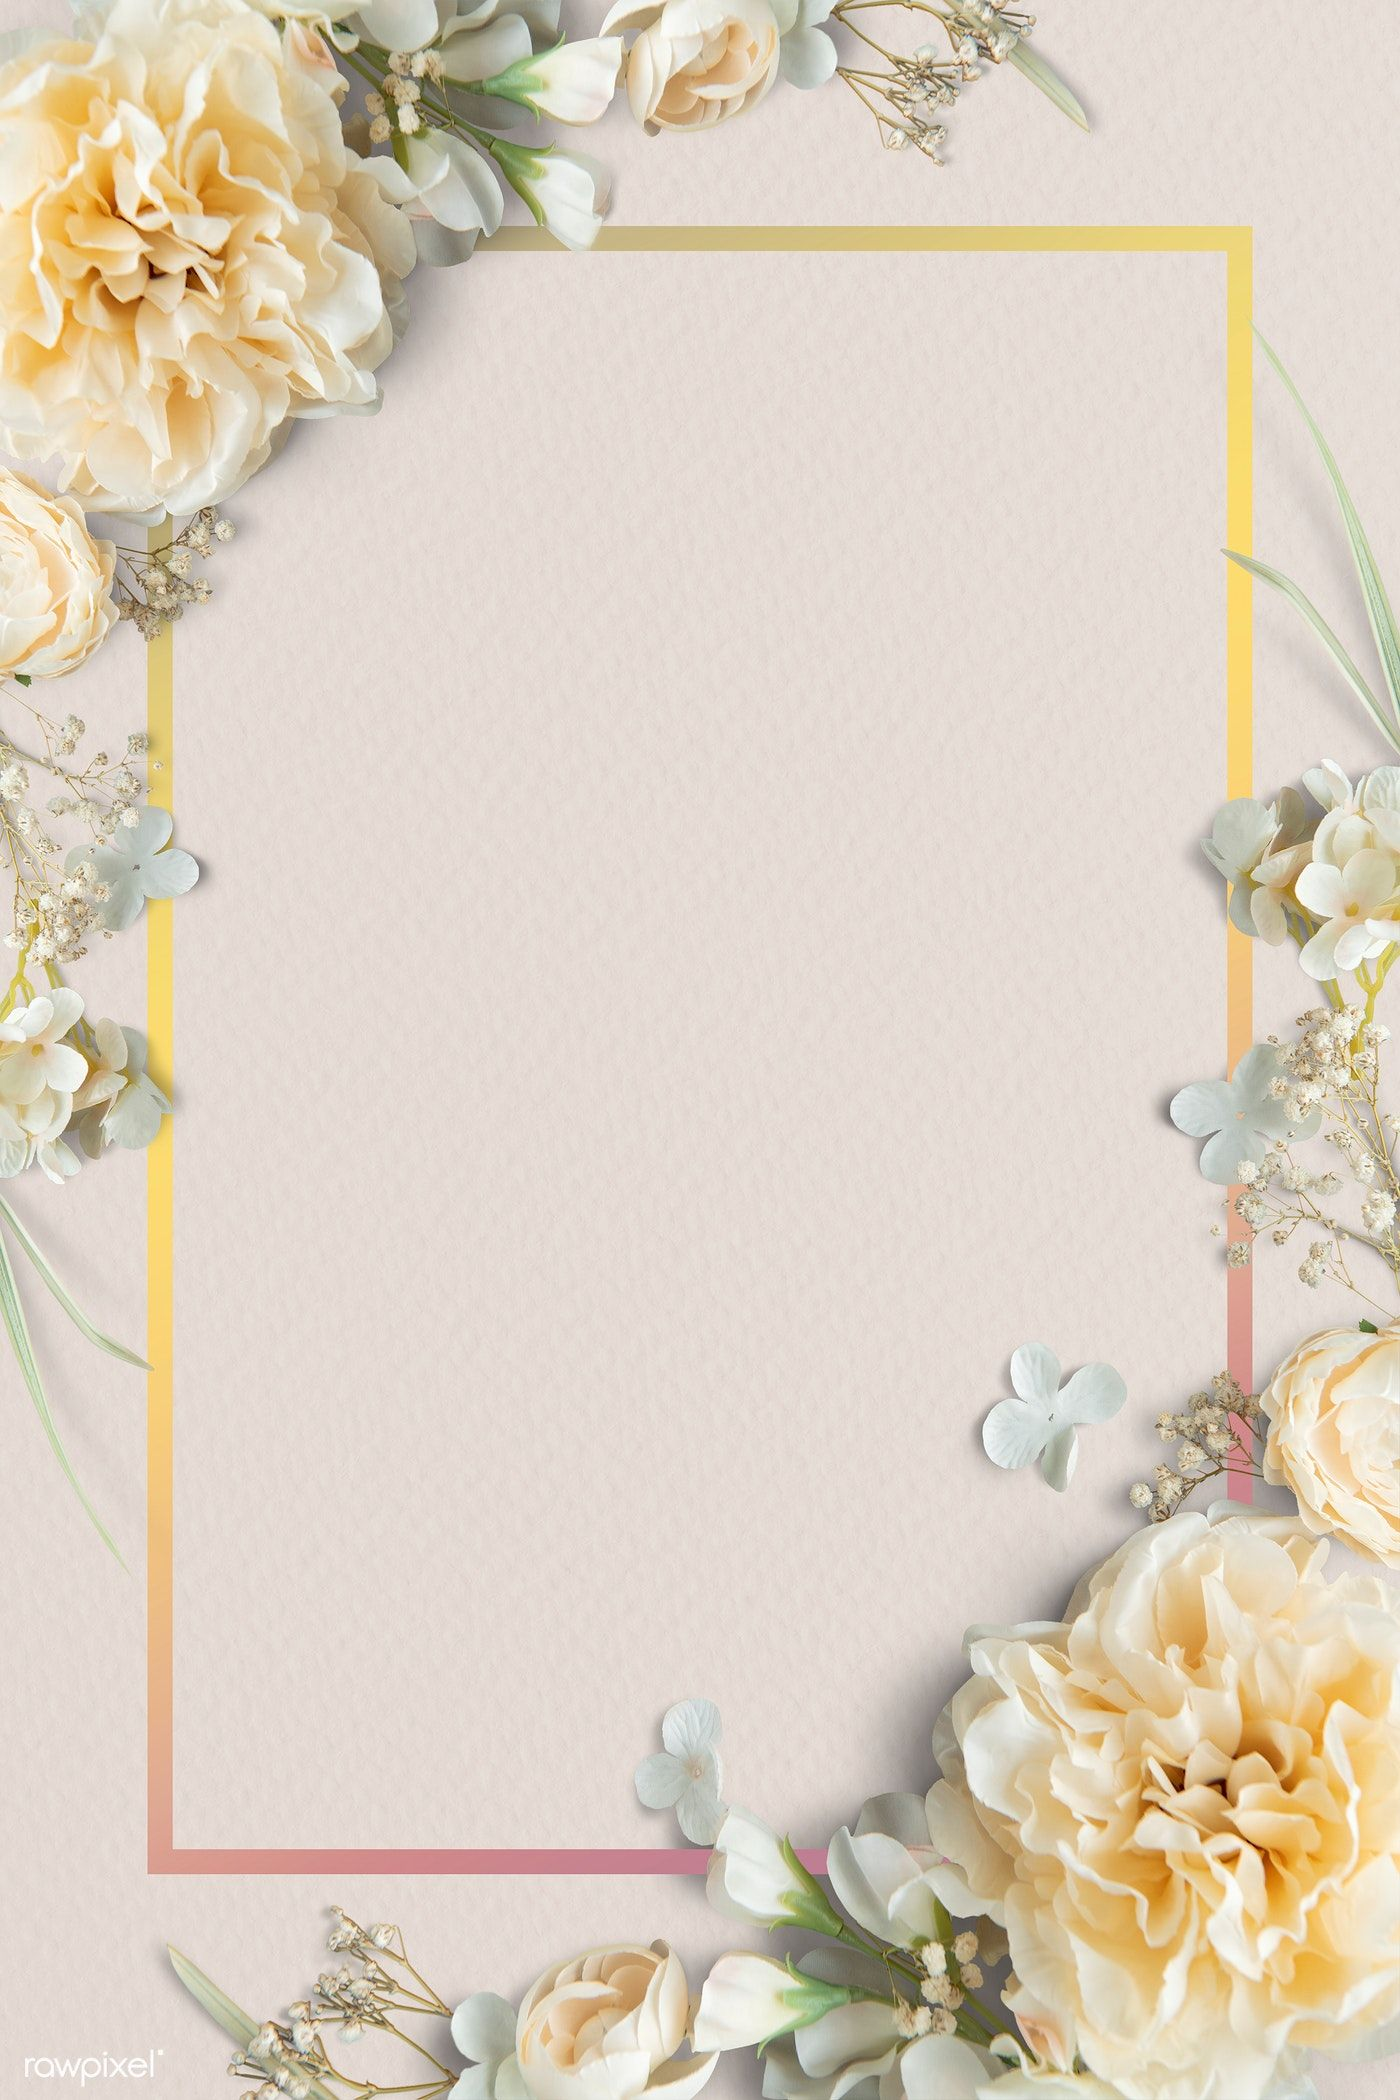 Download Premium Psd Of Blank Blooming Floral Frame Design 1212811